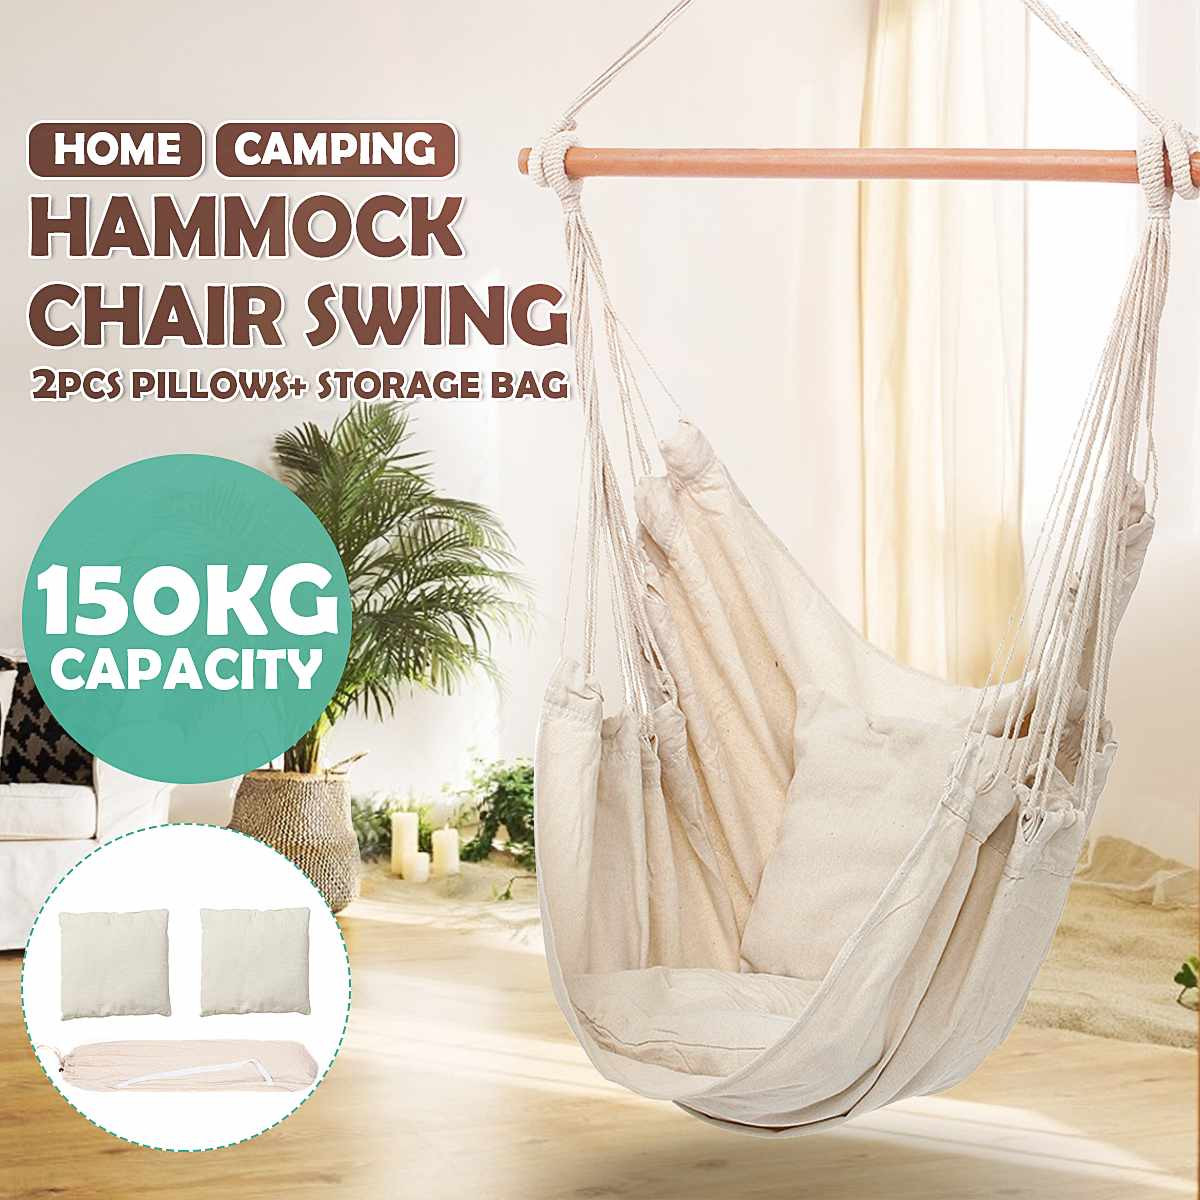 Nordic Style White Hammock Outdoor Indoor Garden Dormitory Bedroom Hanging Chair Child Adult Swinging Safety Hammock With Pillow